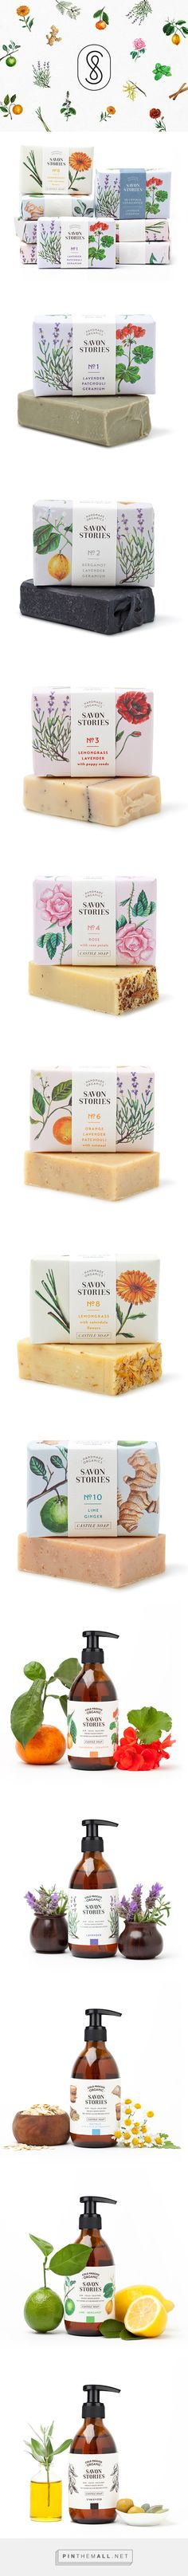 Savon Stories soaps by Menta. #packaging #design